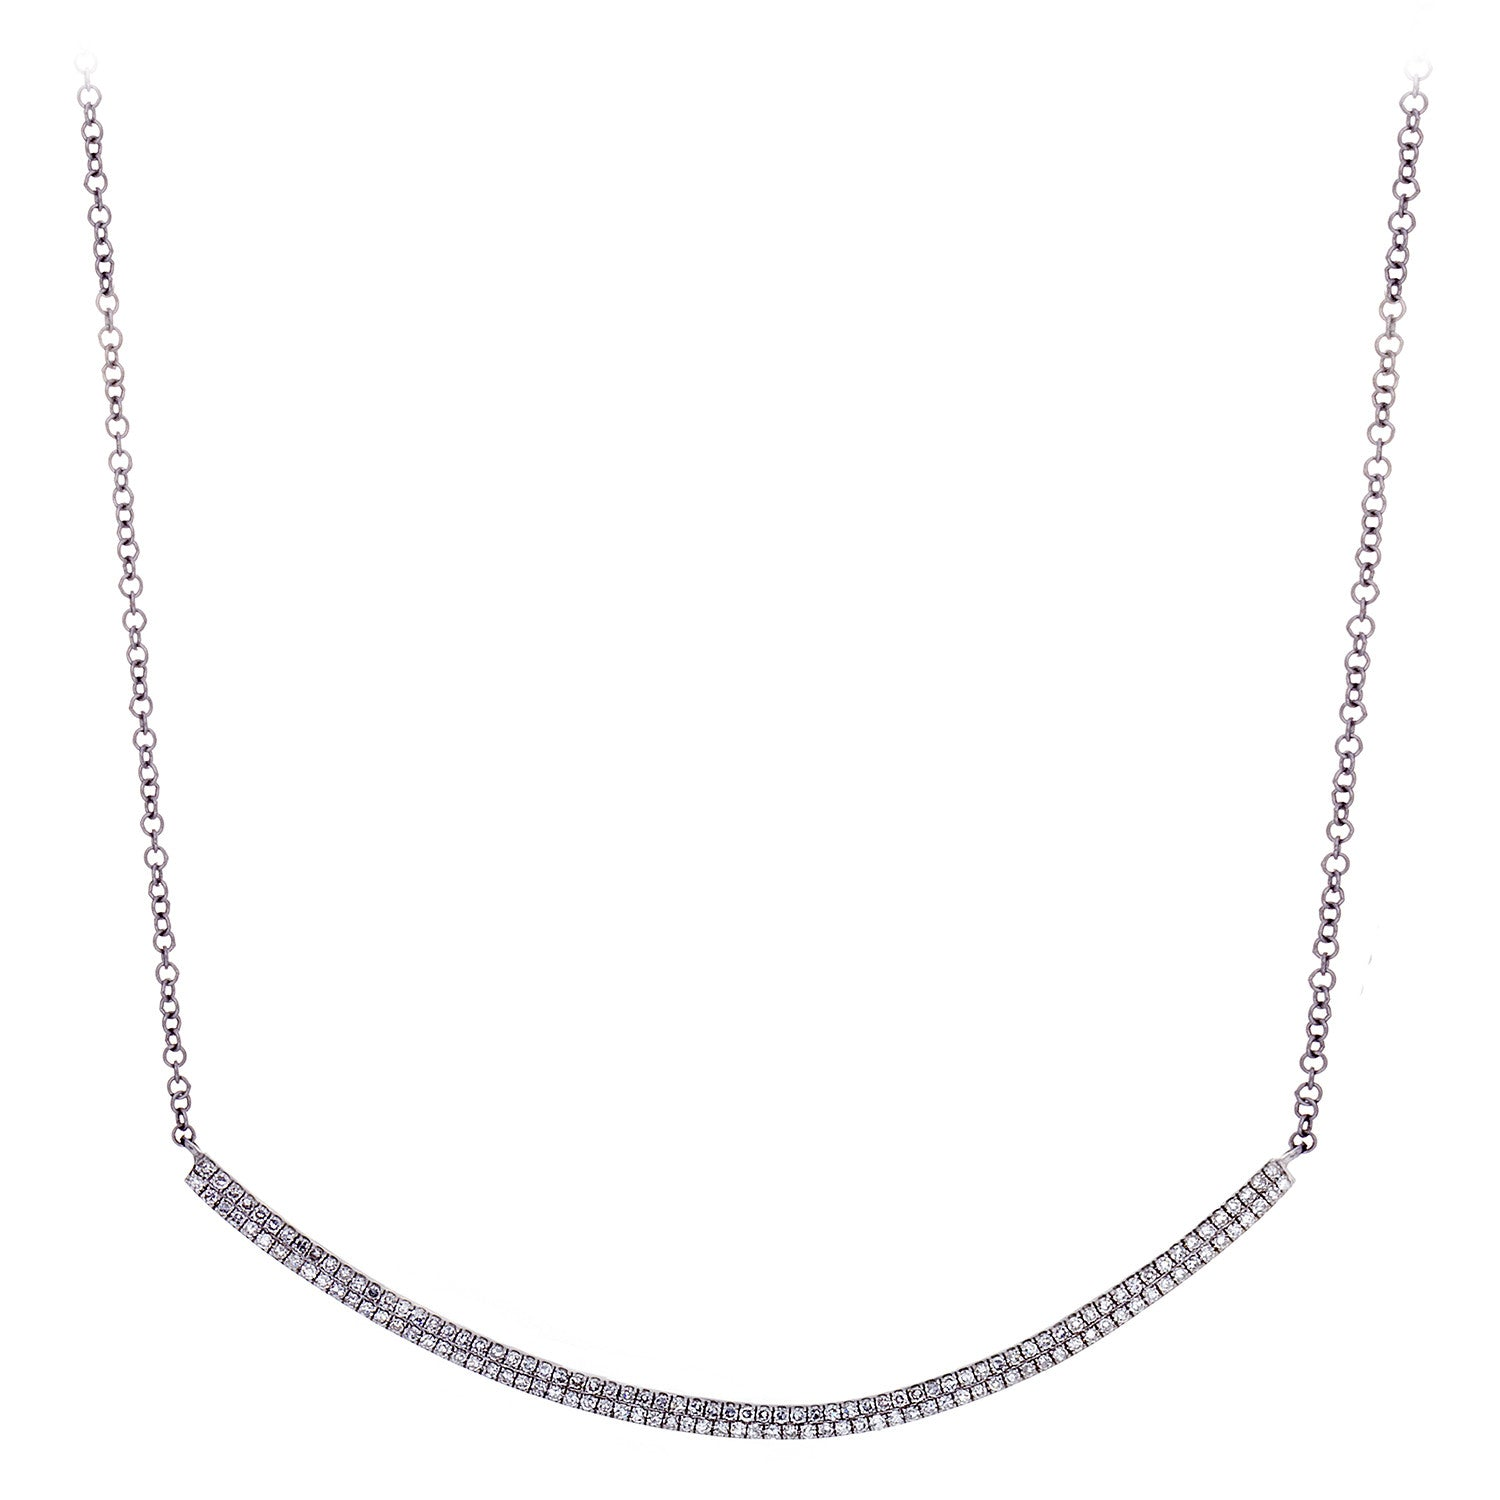 Diamond Pavé & 14K White Gold Curved Bar Necklace- SOLD/CAN BE SPECIAL ORDERED WITH 4-6 WEEKS DELIVERY TIME FRAME